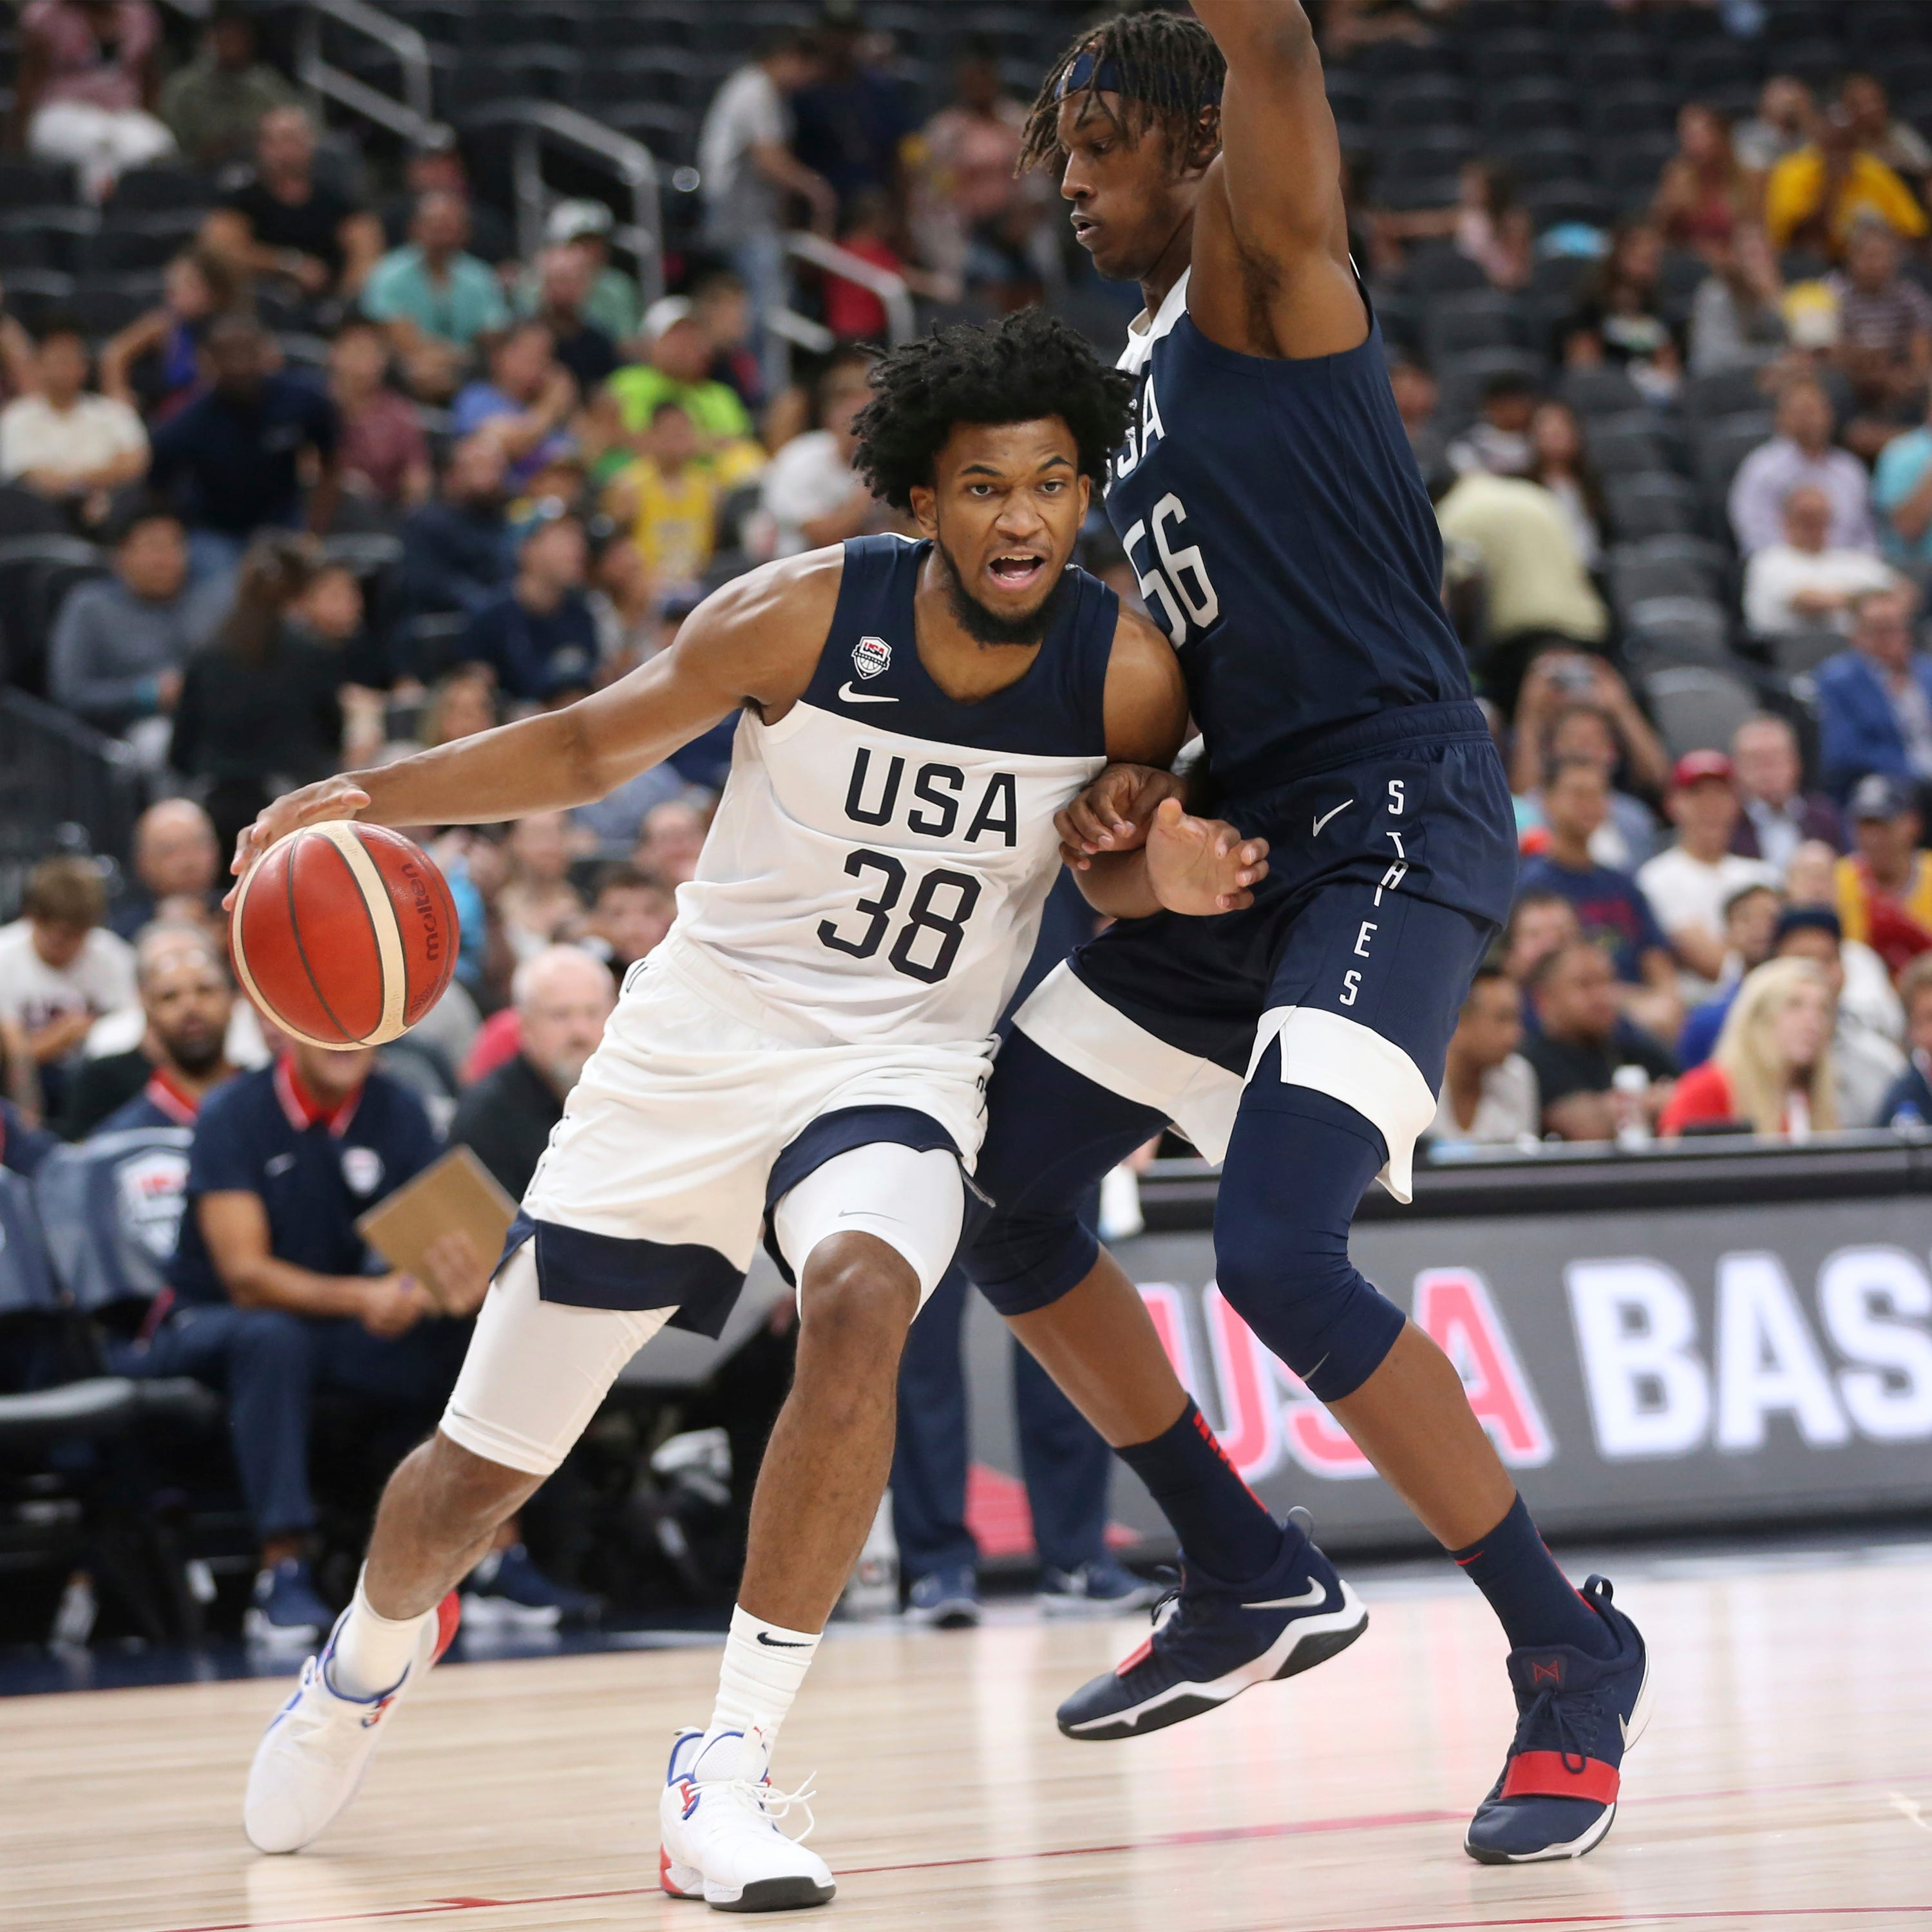 USA Basketball plays first scrimmage in advance of World Cup thumbnail